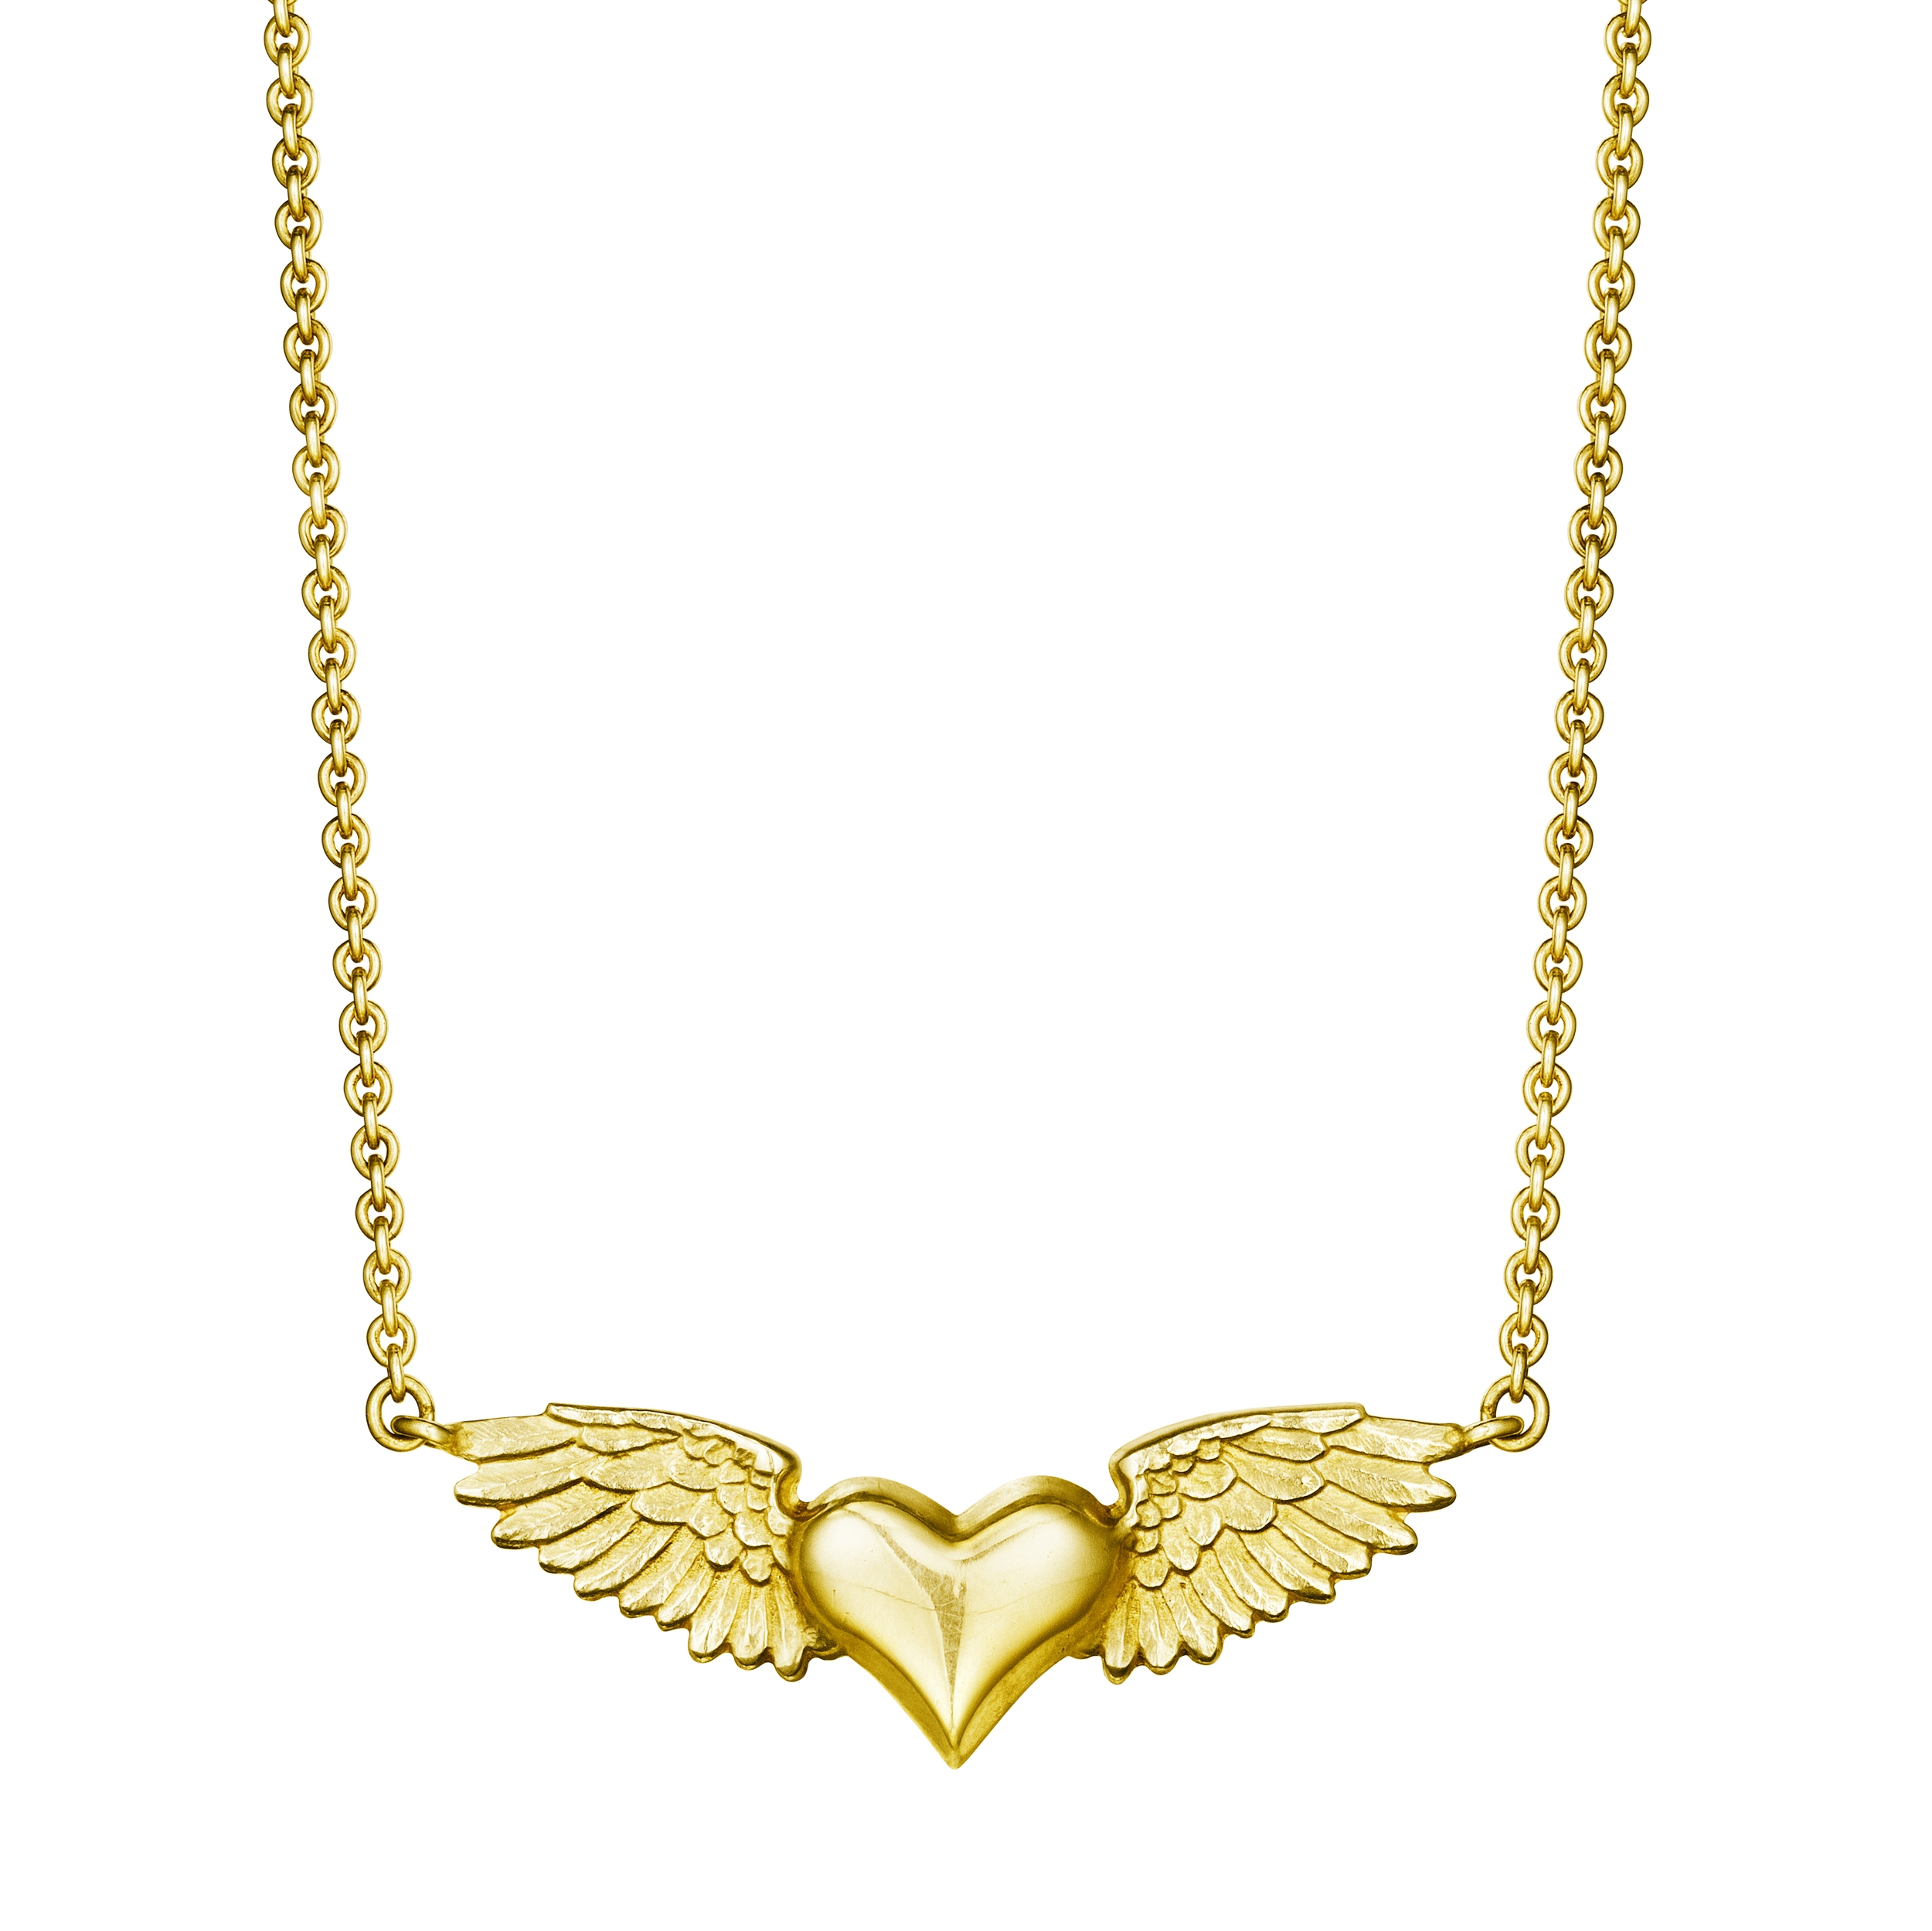 Gold Flying Heart Necklace